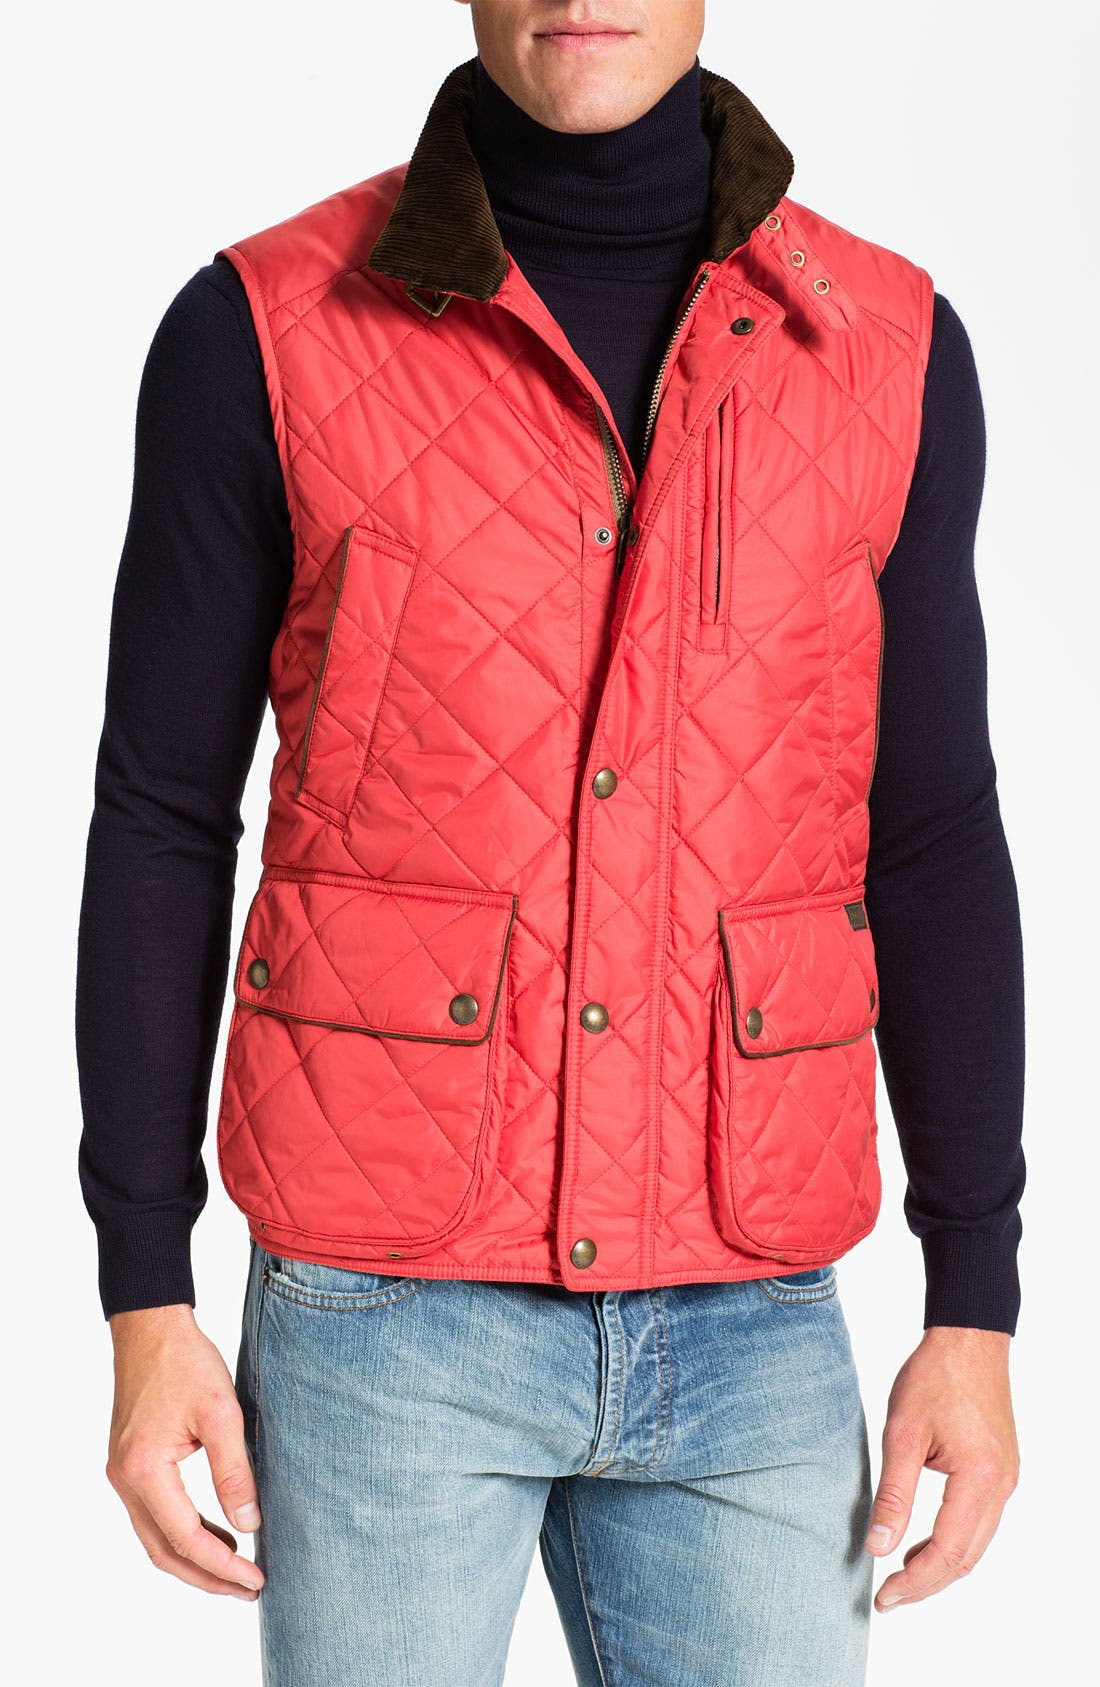 Alternate Image 1 Selected - Polo Ralph Lauren Classic Fit Quilted Vest